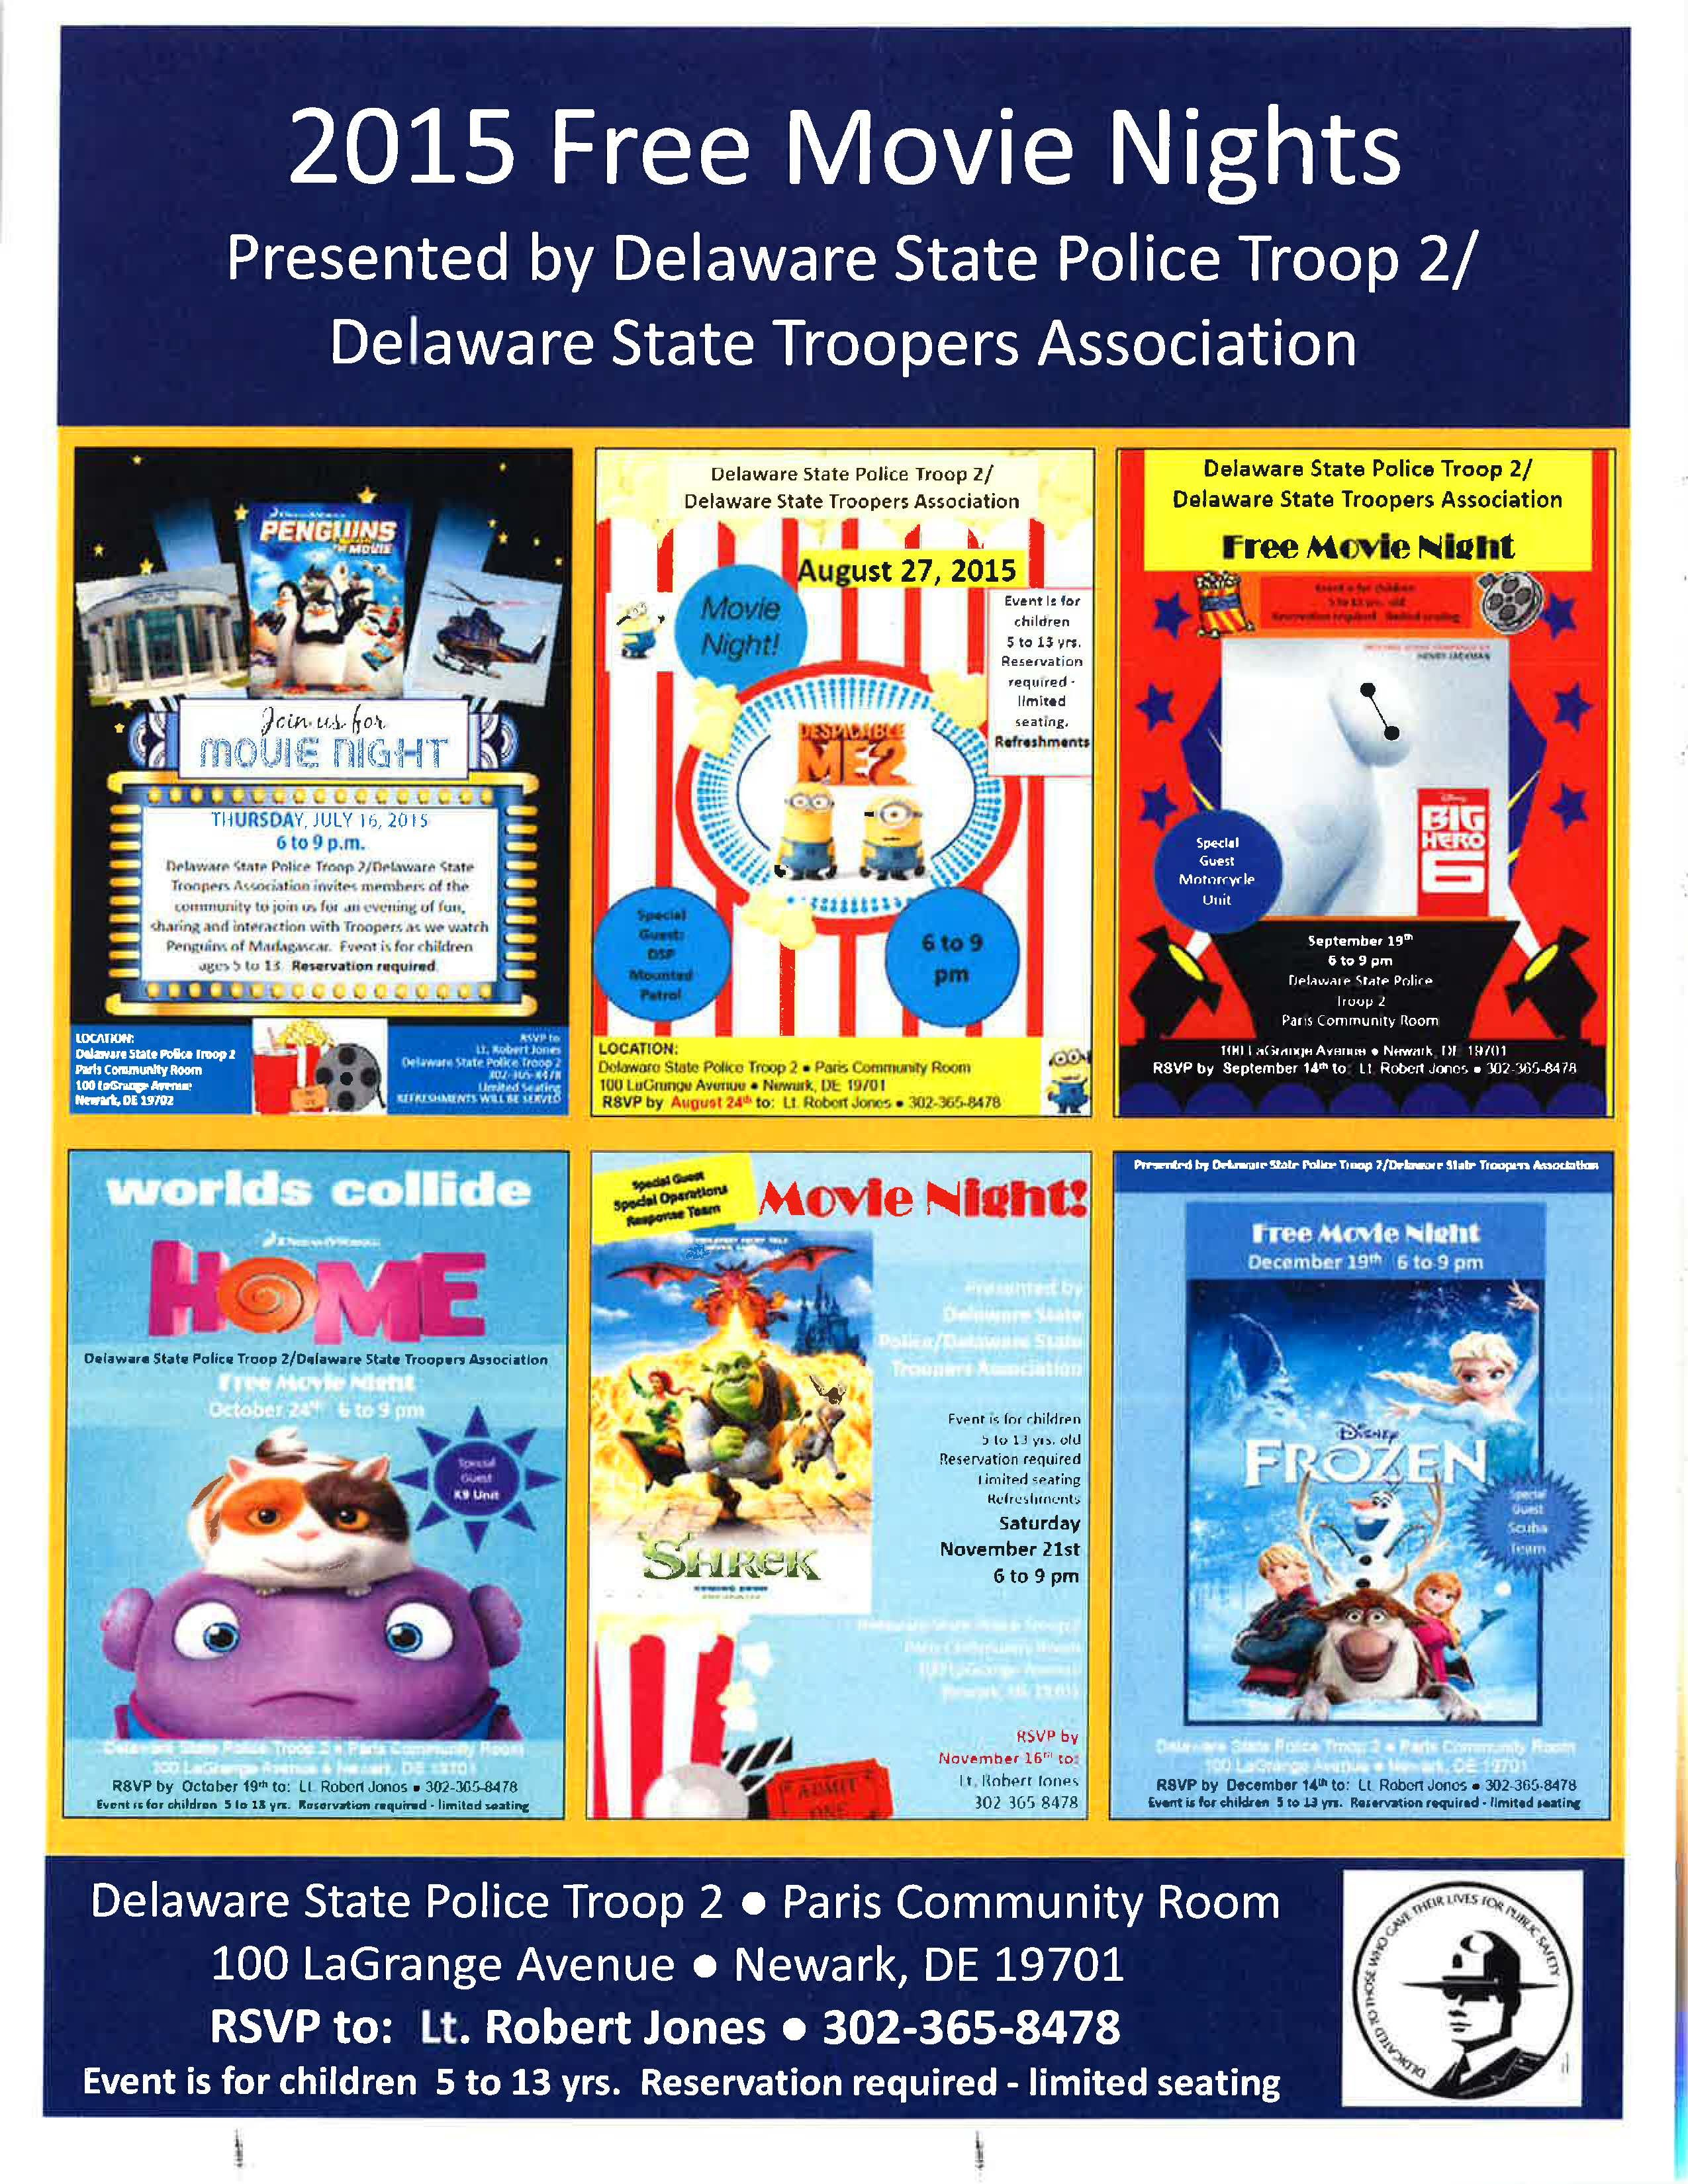 Delaware State Police Troop 2 will host three more free